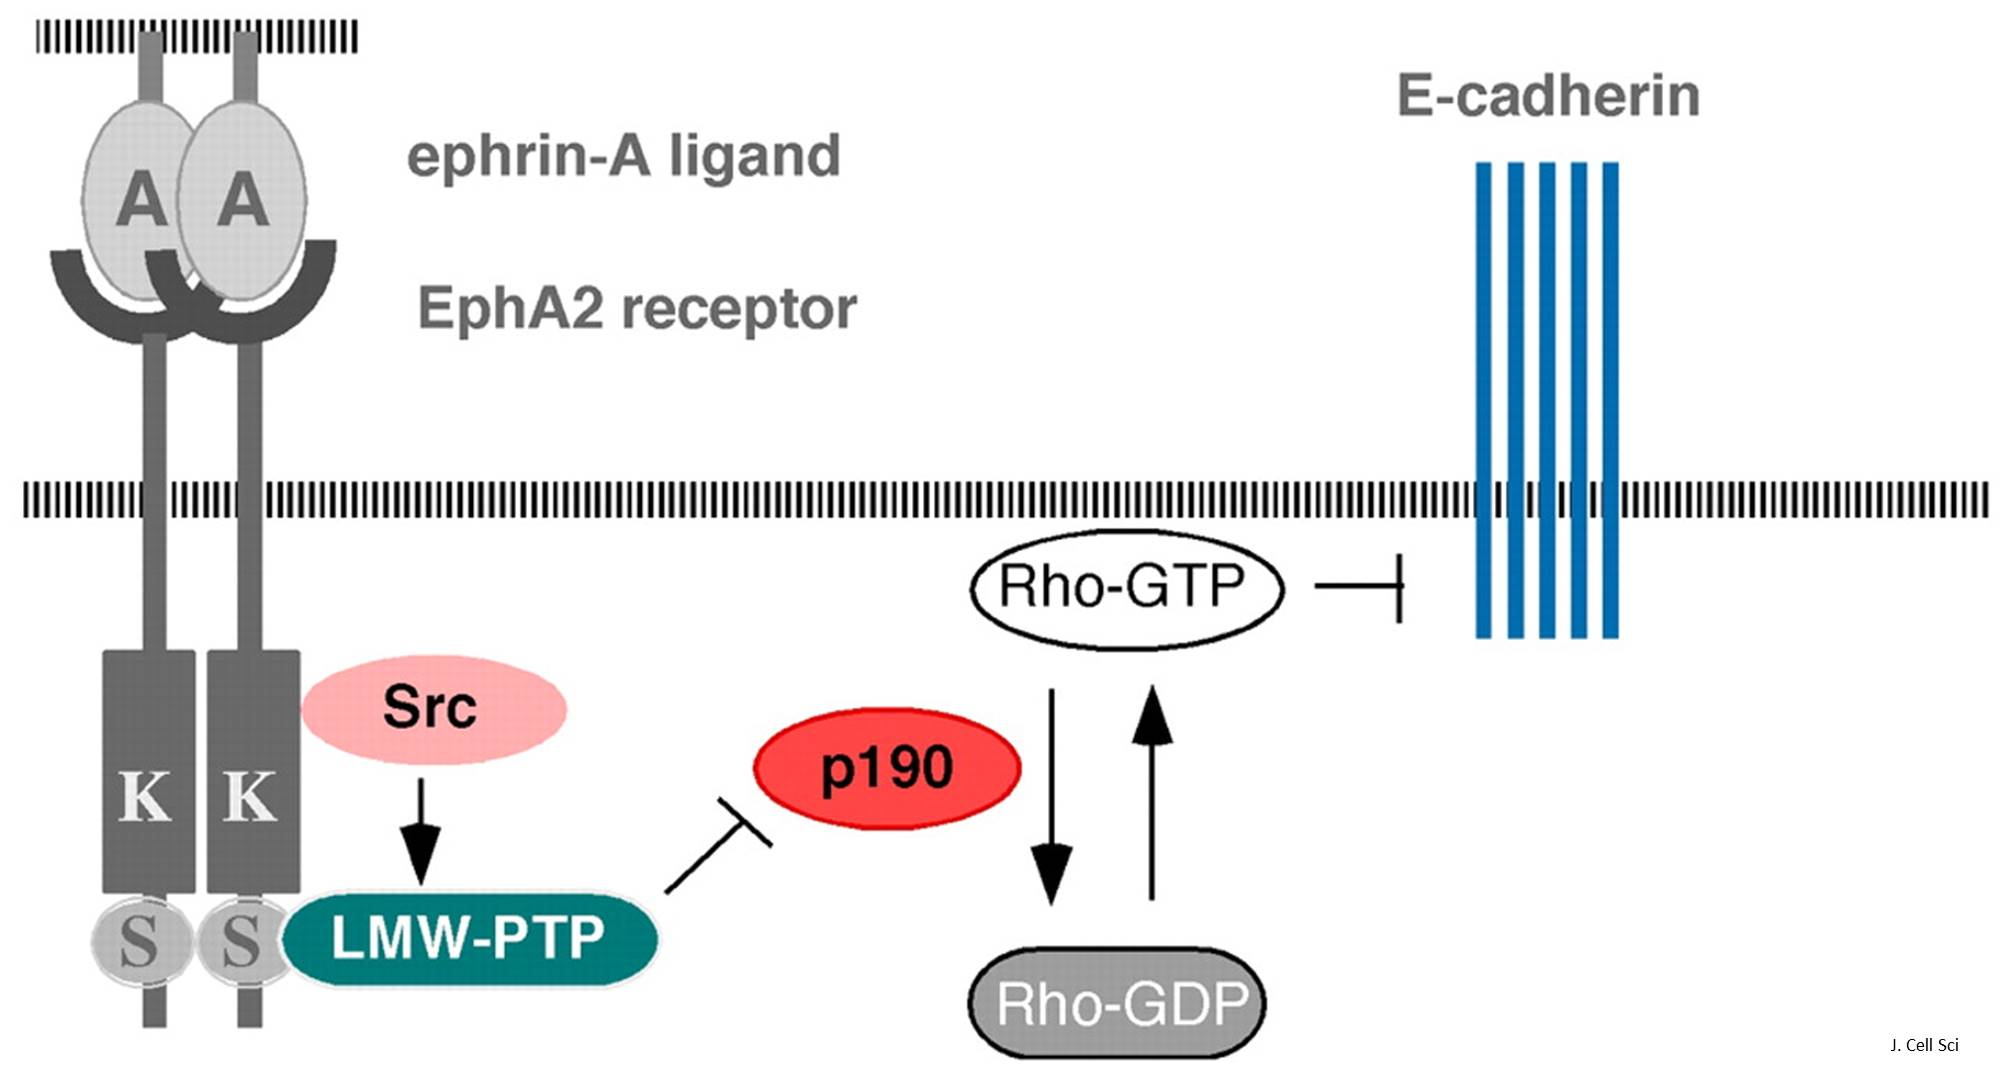 A receptor discovered for progranulin - implication in cancer and neurodegenerative diseases